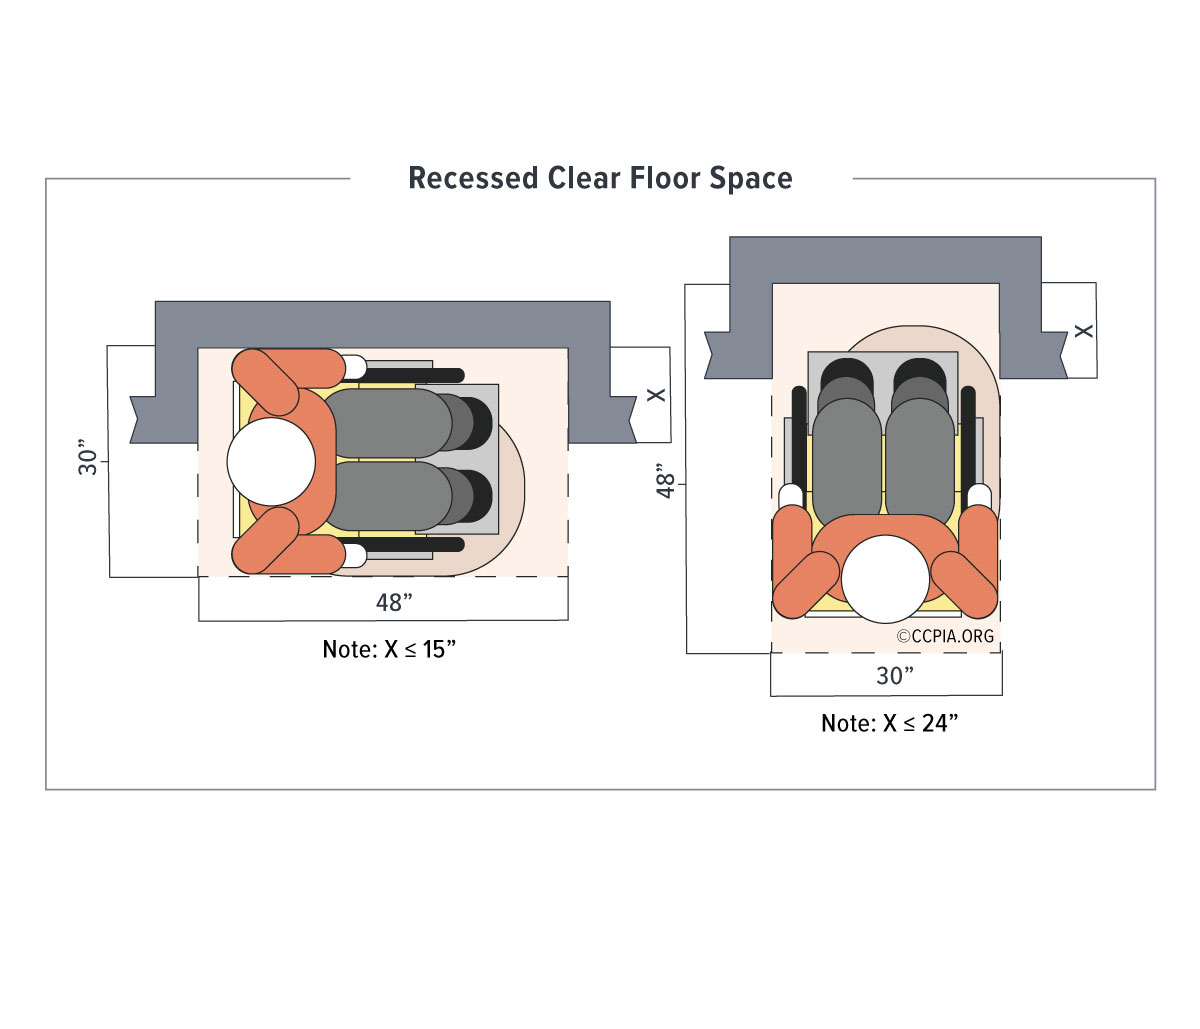 Recessed clear floor space for wheelchairs, accessibility in public accommodations and commercial facilities.